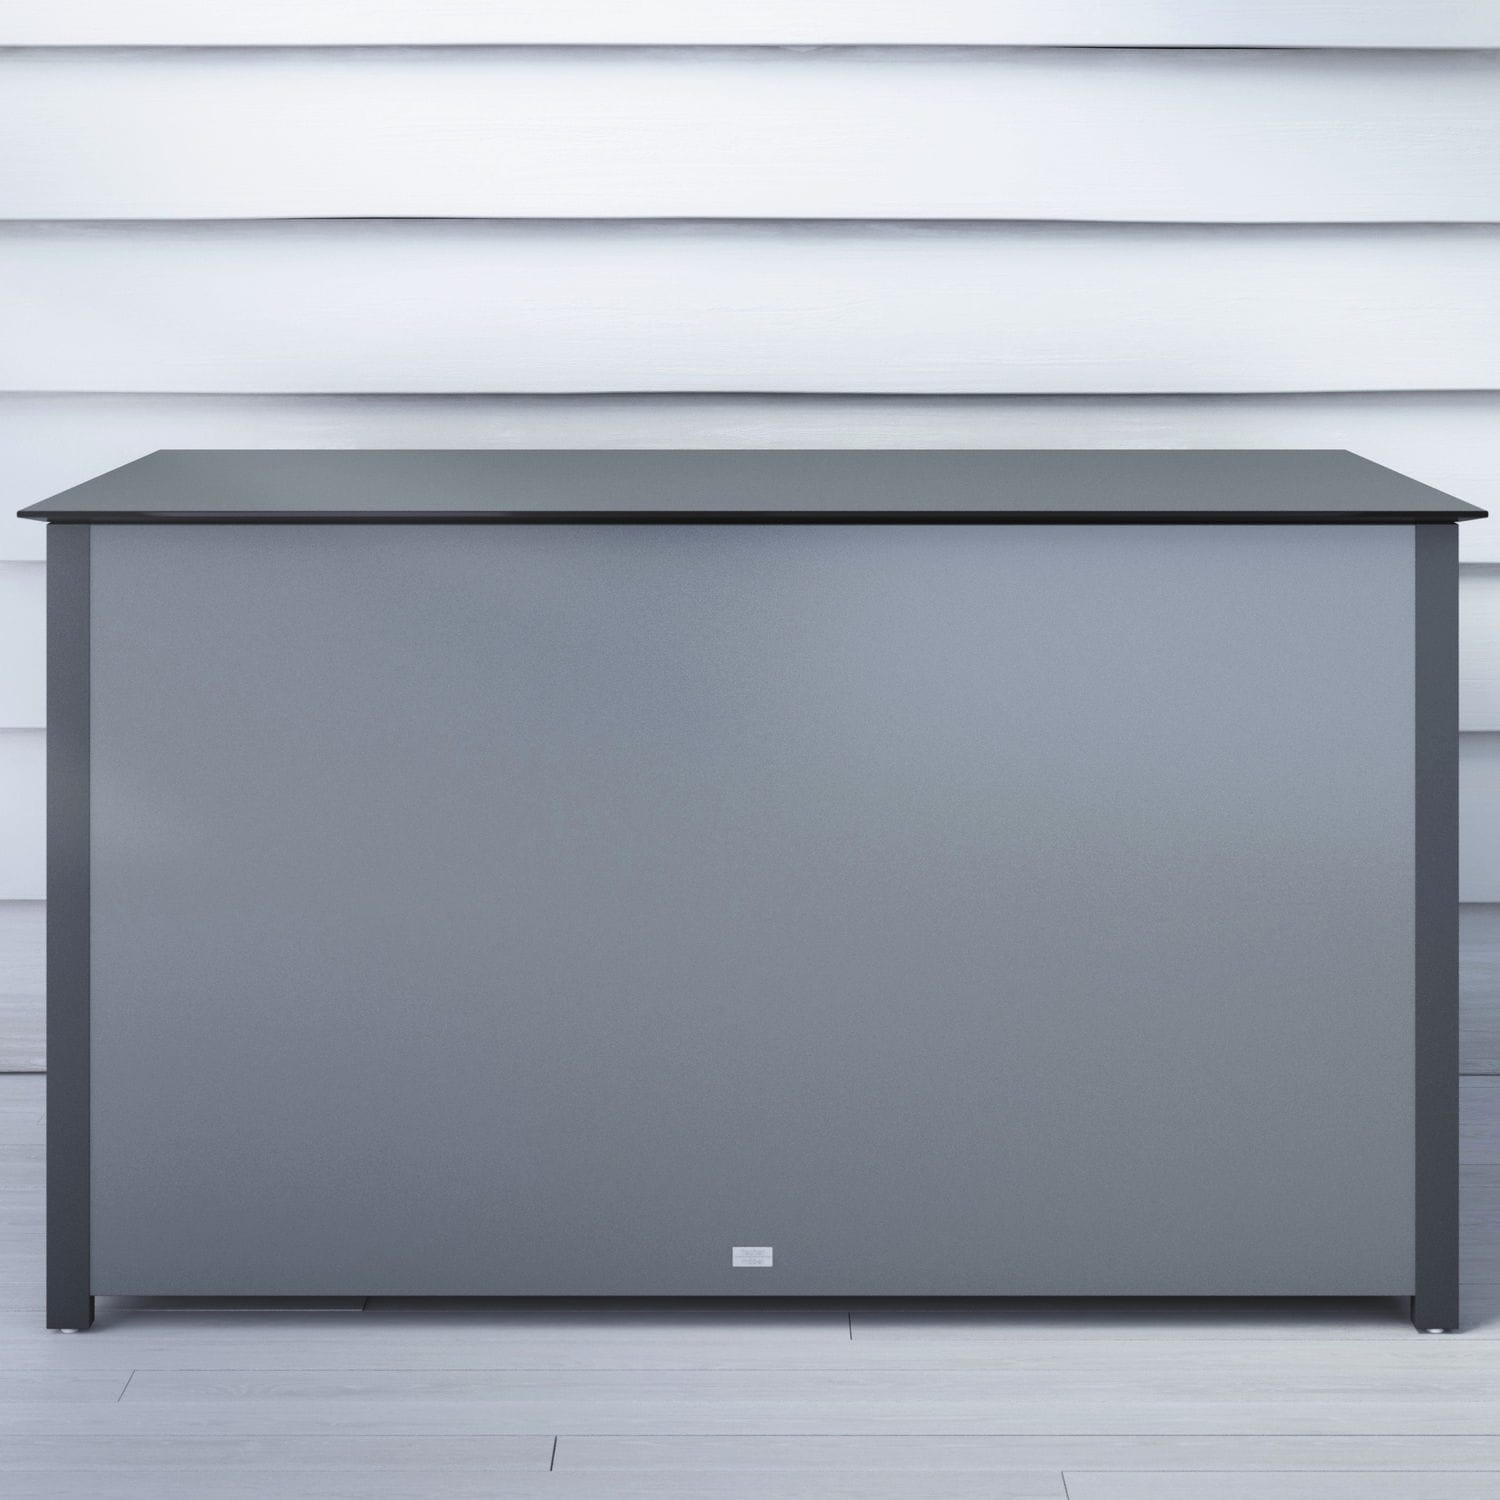 contemporary chest / garden / aluminum / cushion - kissentruhe ... - Wohneinrichtung In Garage